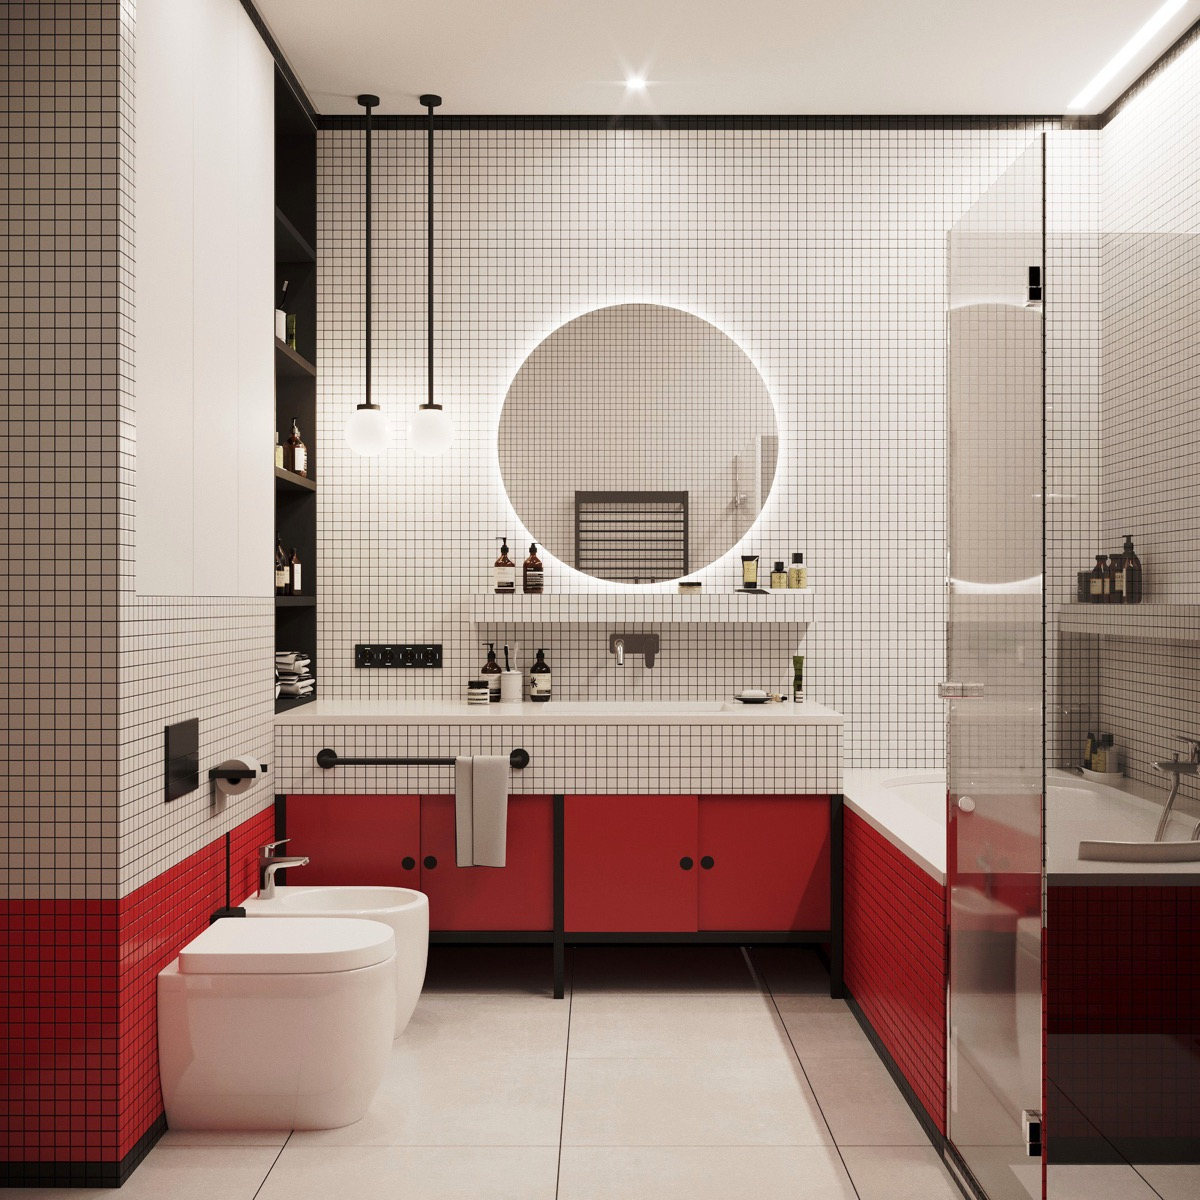 51 Red Bathrooms Design Ideas With Tips To Decorate And Accessorize Yours